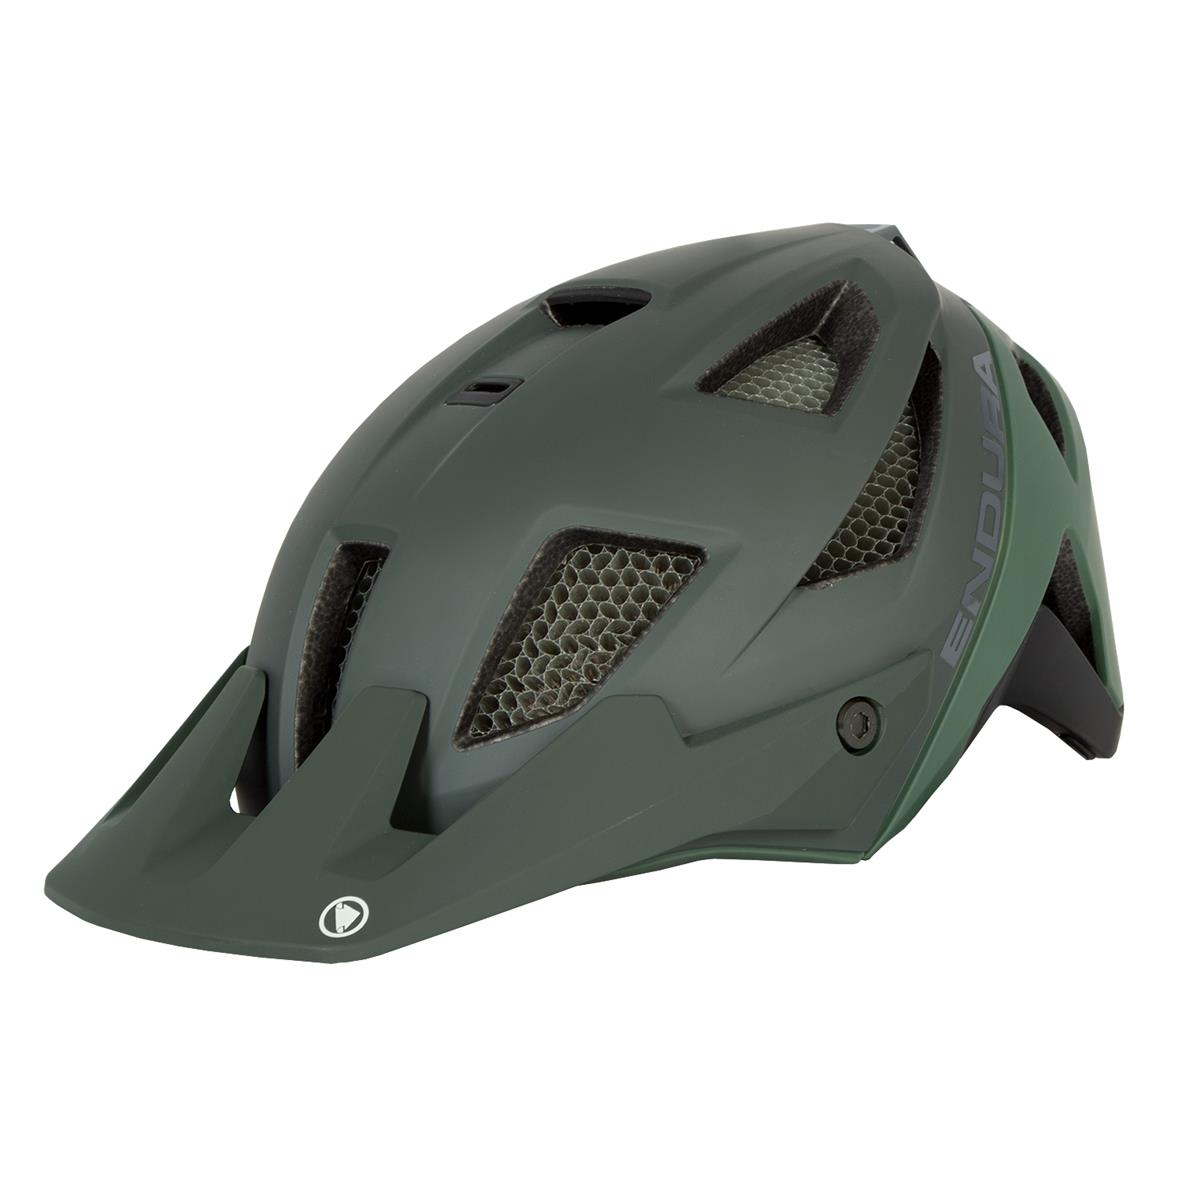 MT500 helmet forest green size S/M (51-56cm)